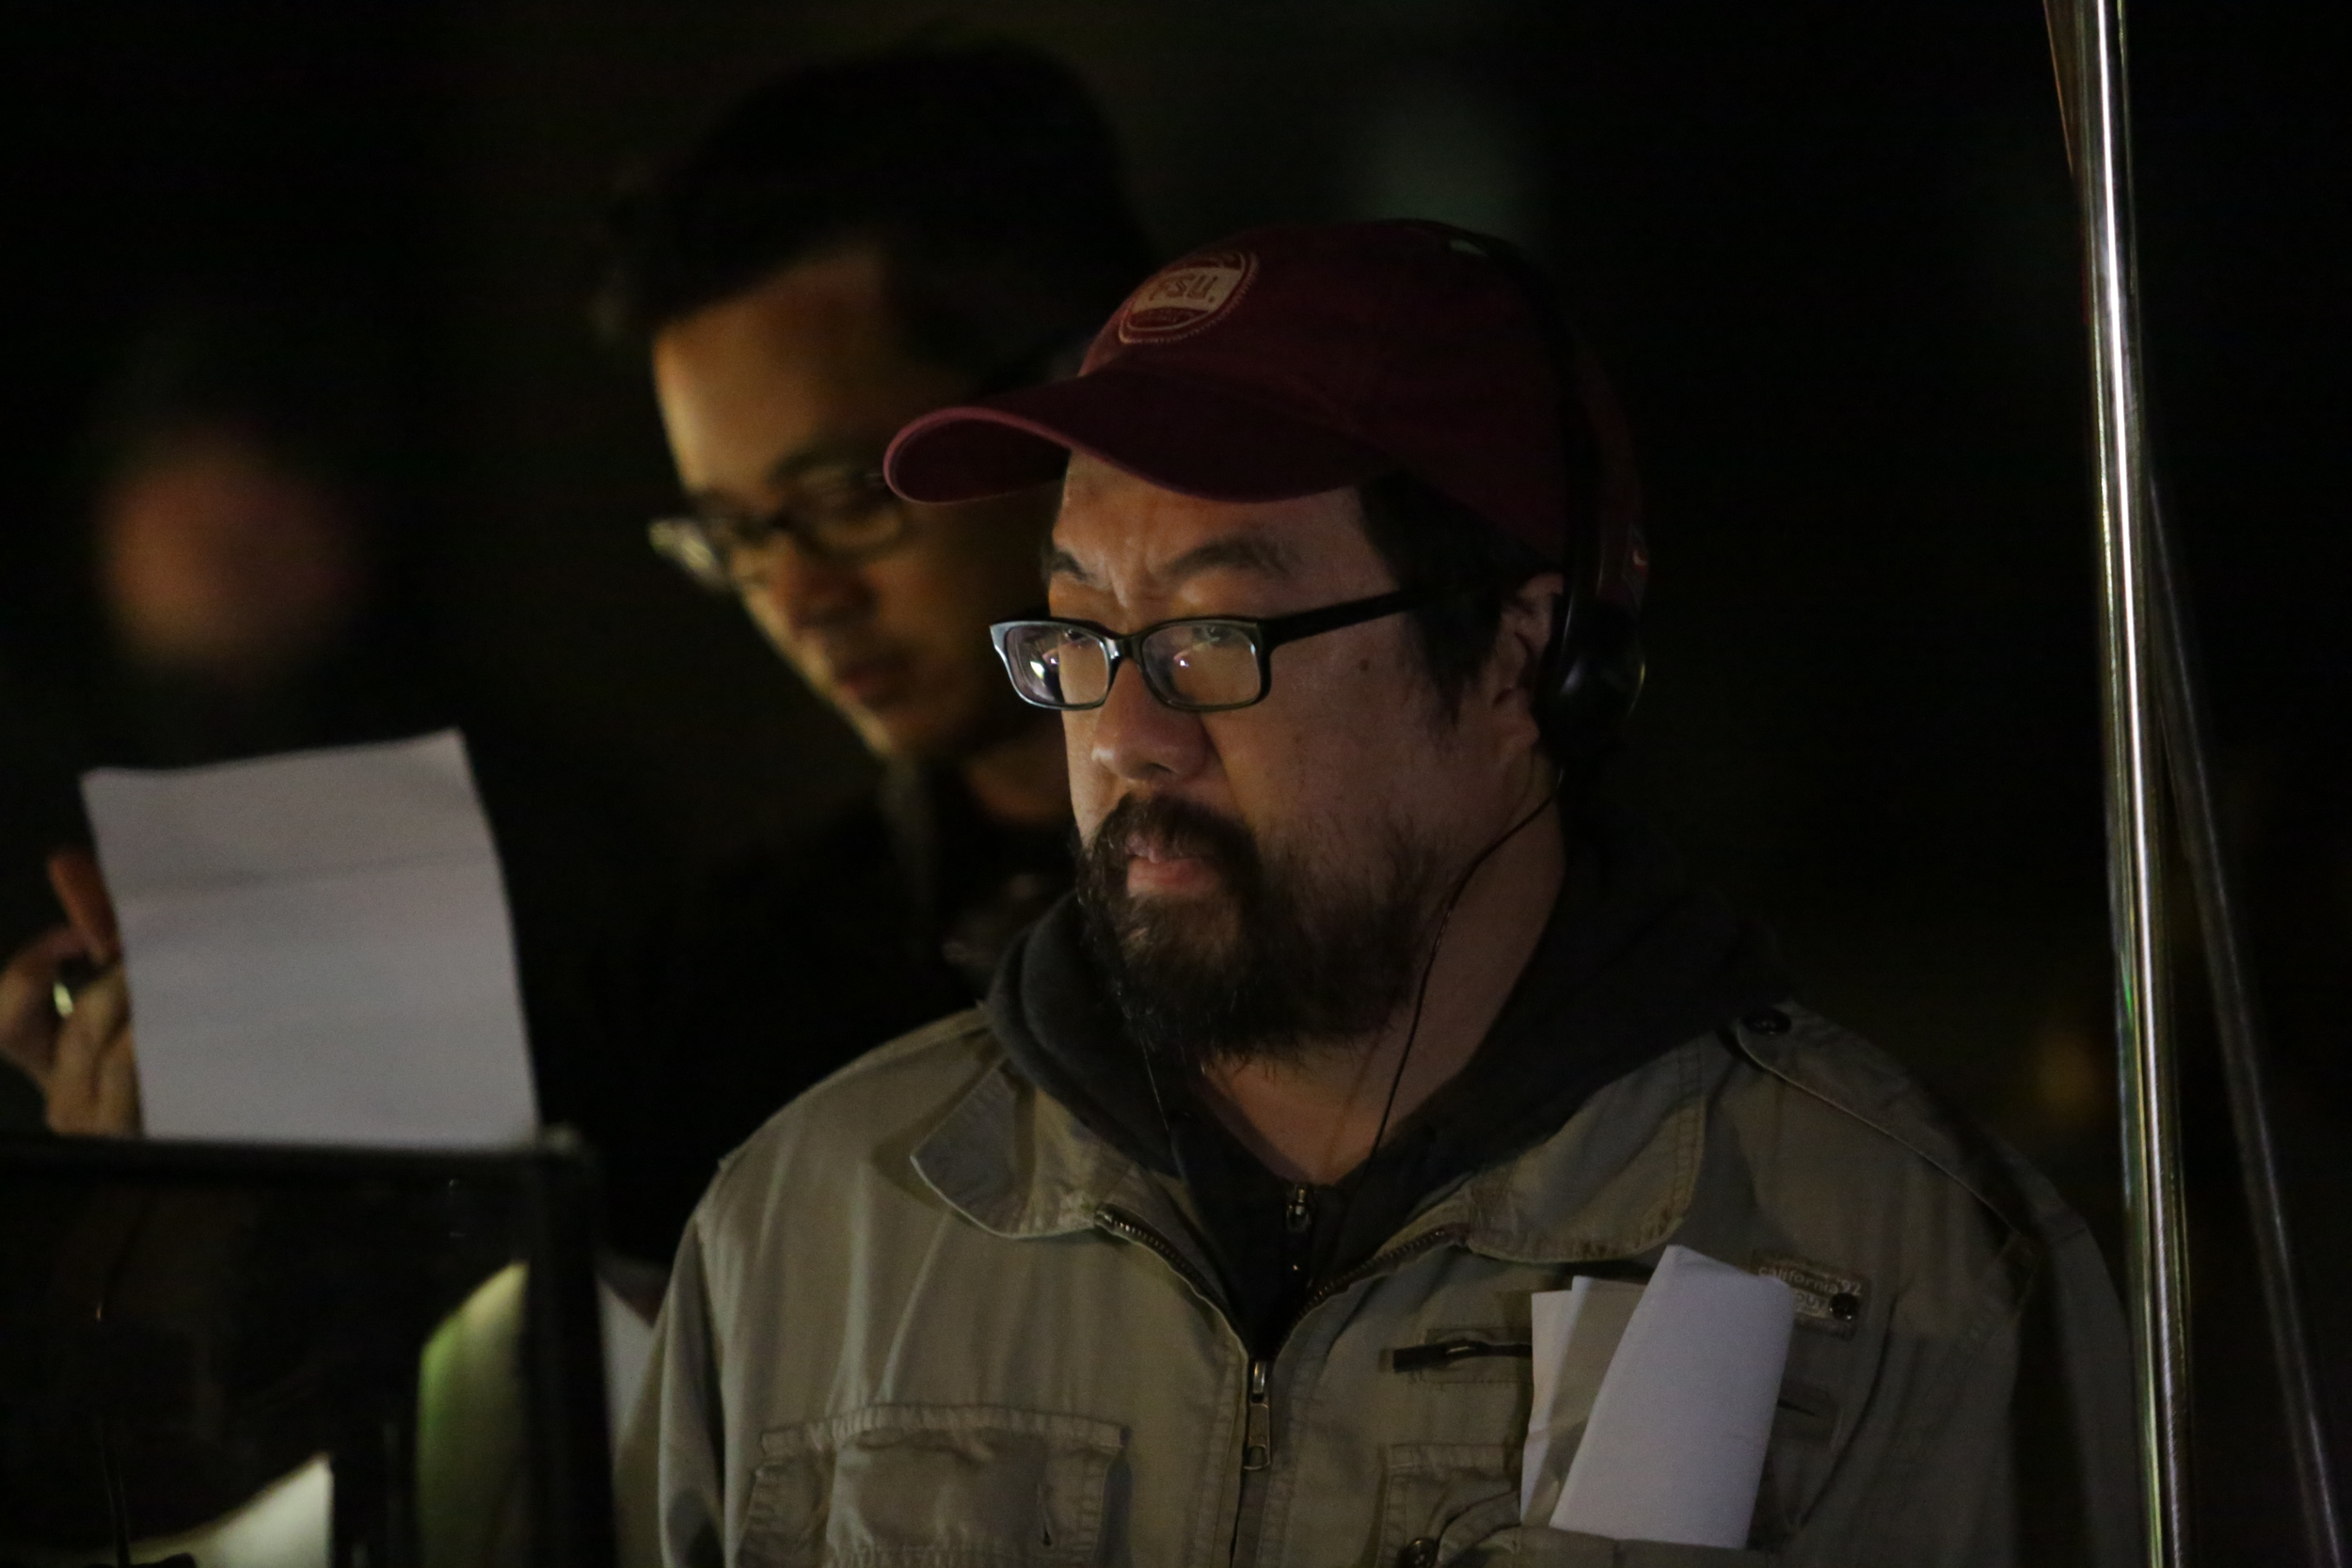 Comfort director William Lu watches a scene on the monitor. Image courtesy of Late to the Party Productions.